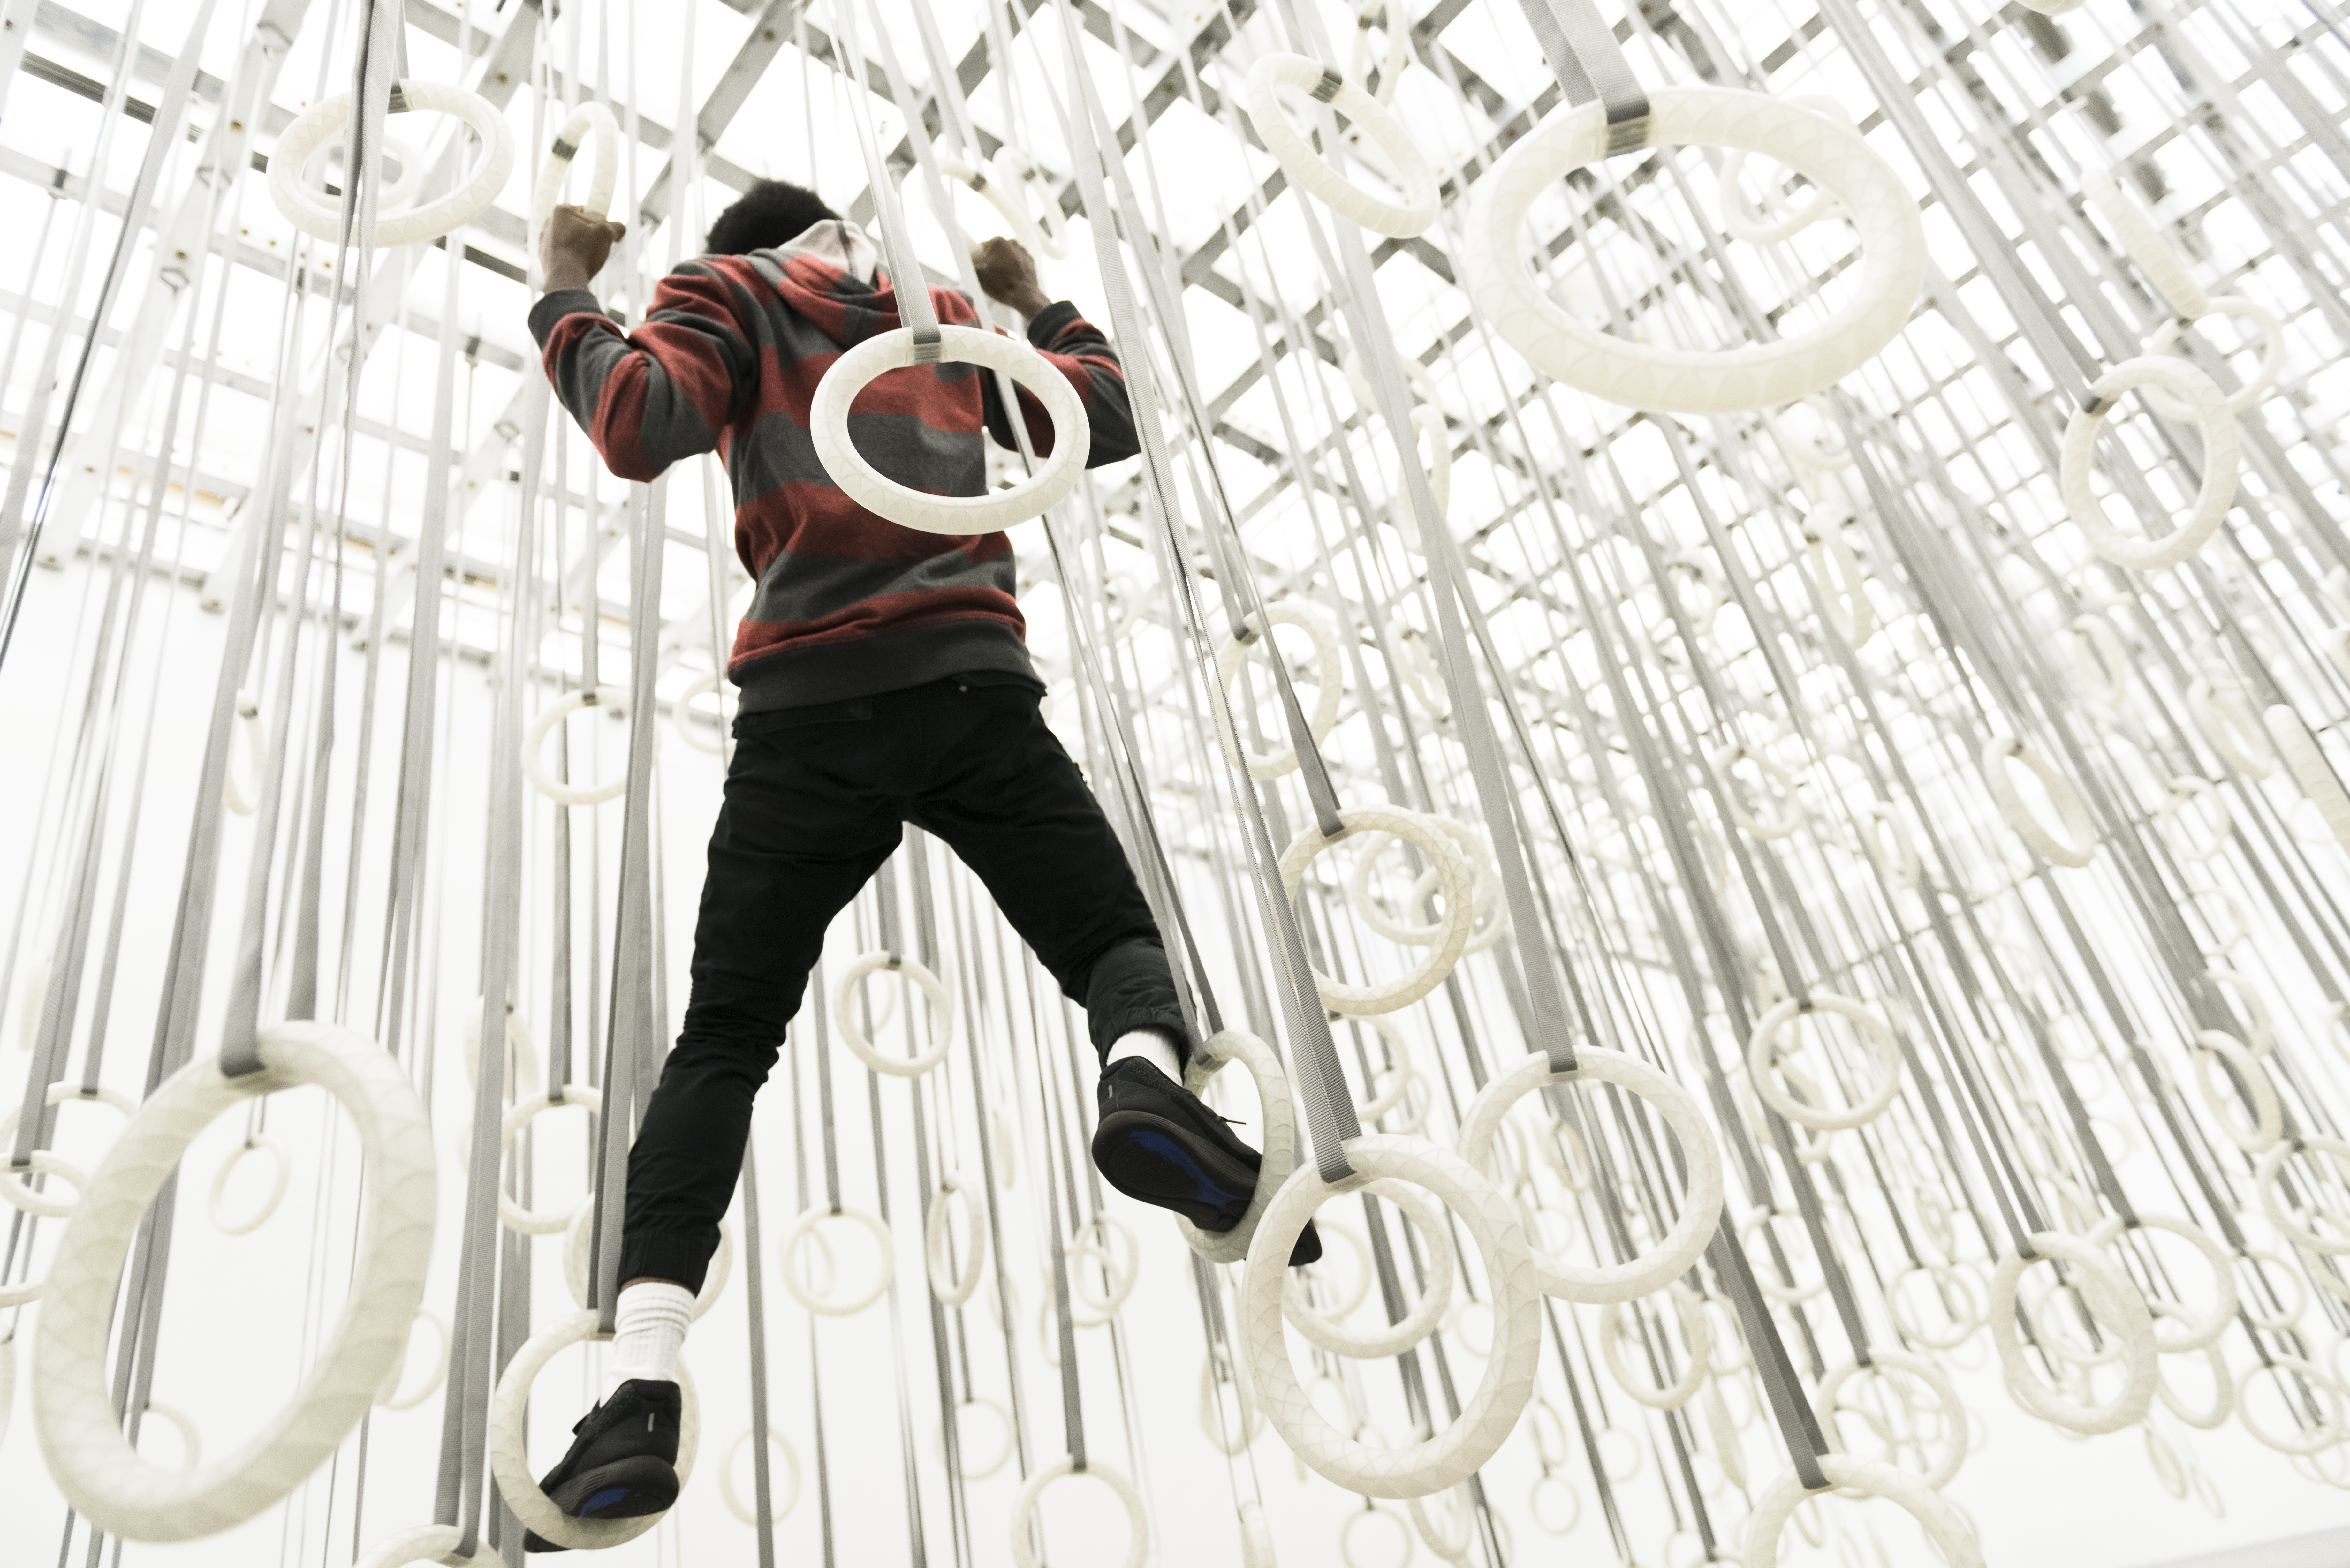 WilliamForsythe_TheFactOfMatter_GymRings2_PhotoCredit_GoMA_LizaVoll.jpg